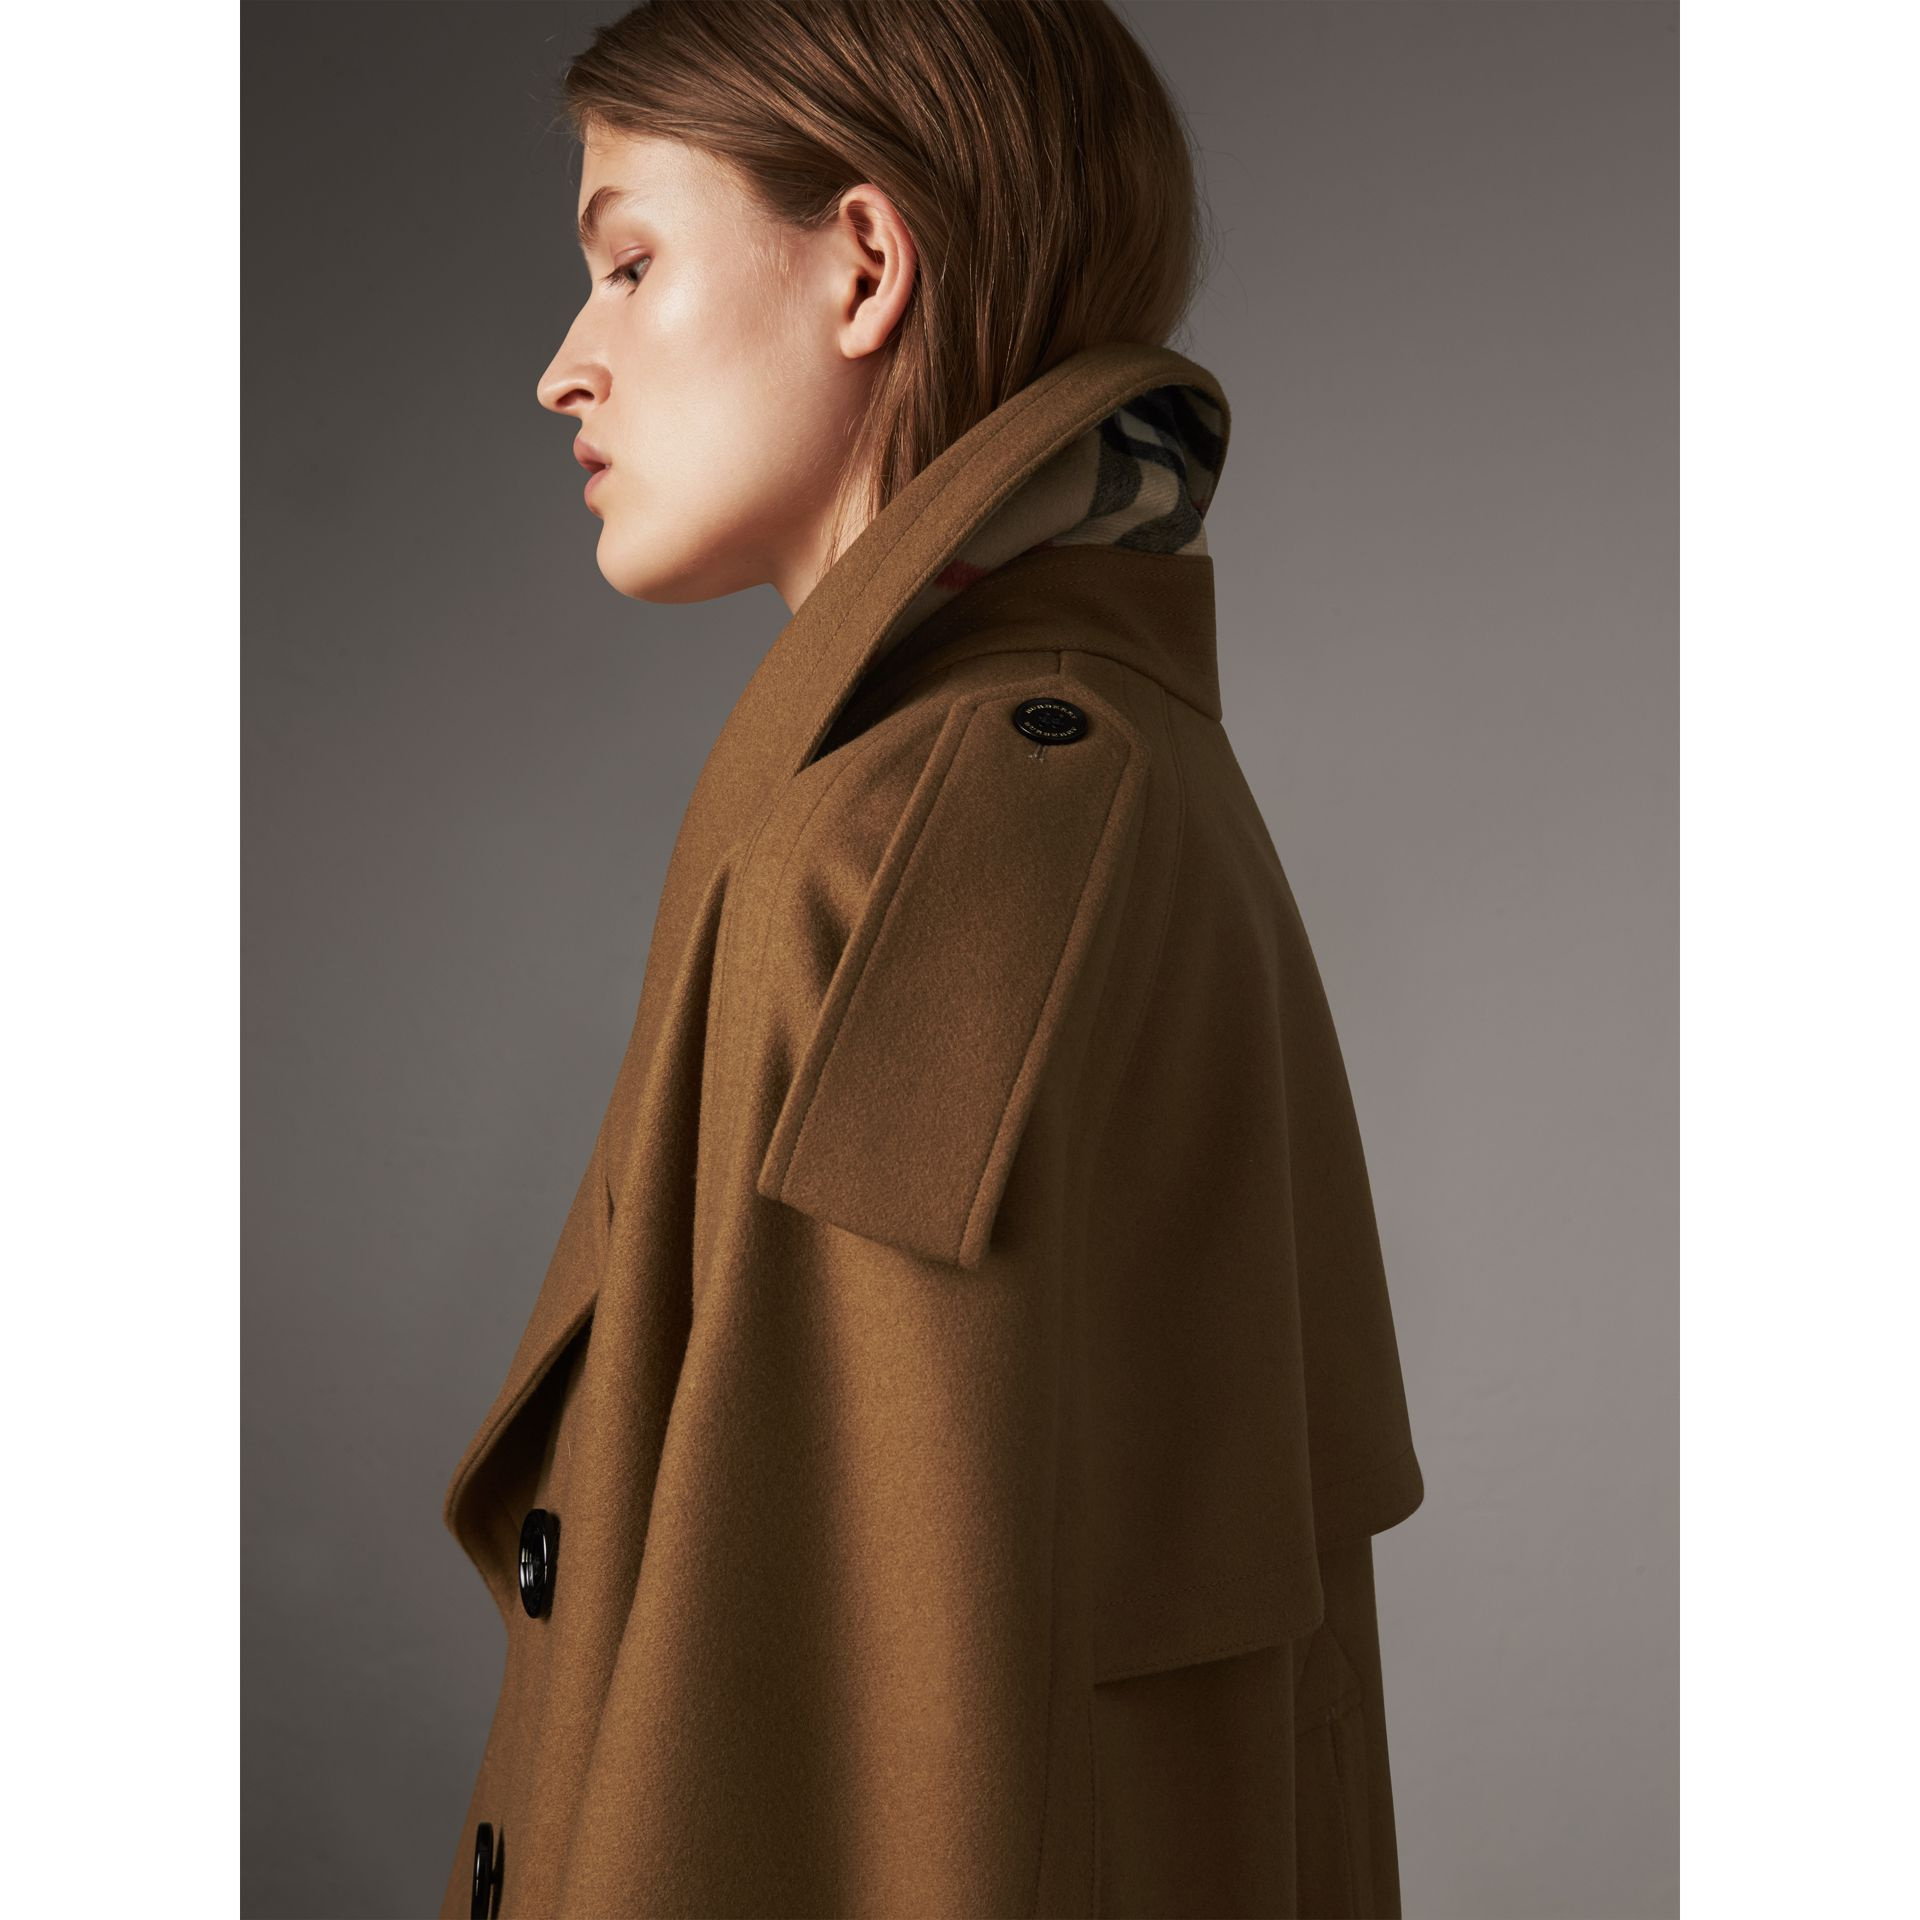 Wool Double-breasted Military Cape in Camel - Women | Burberry - gallery image 1